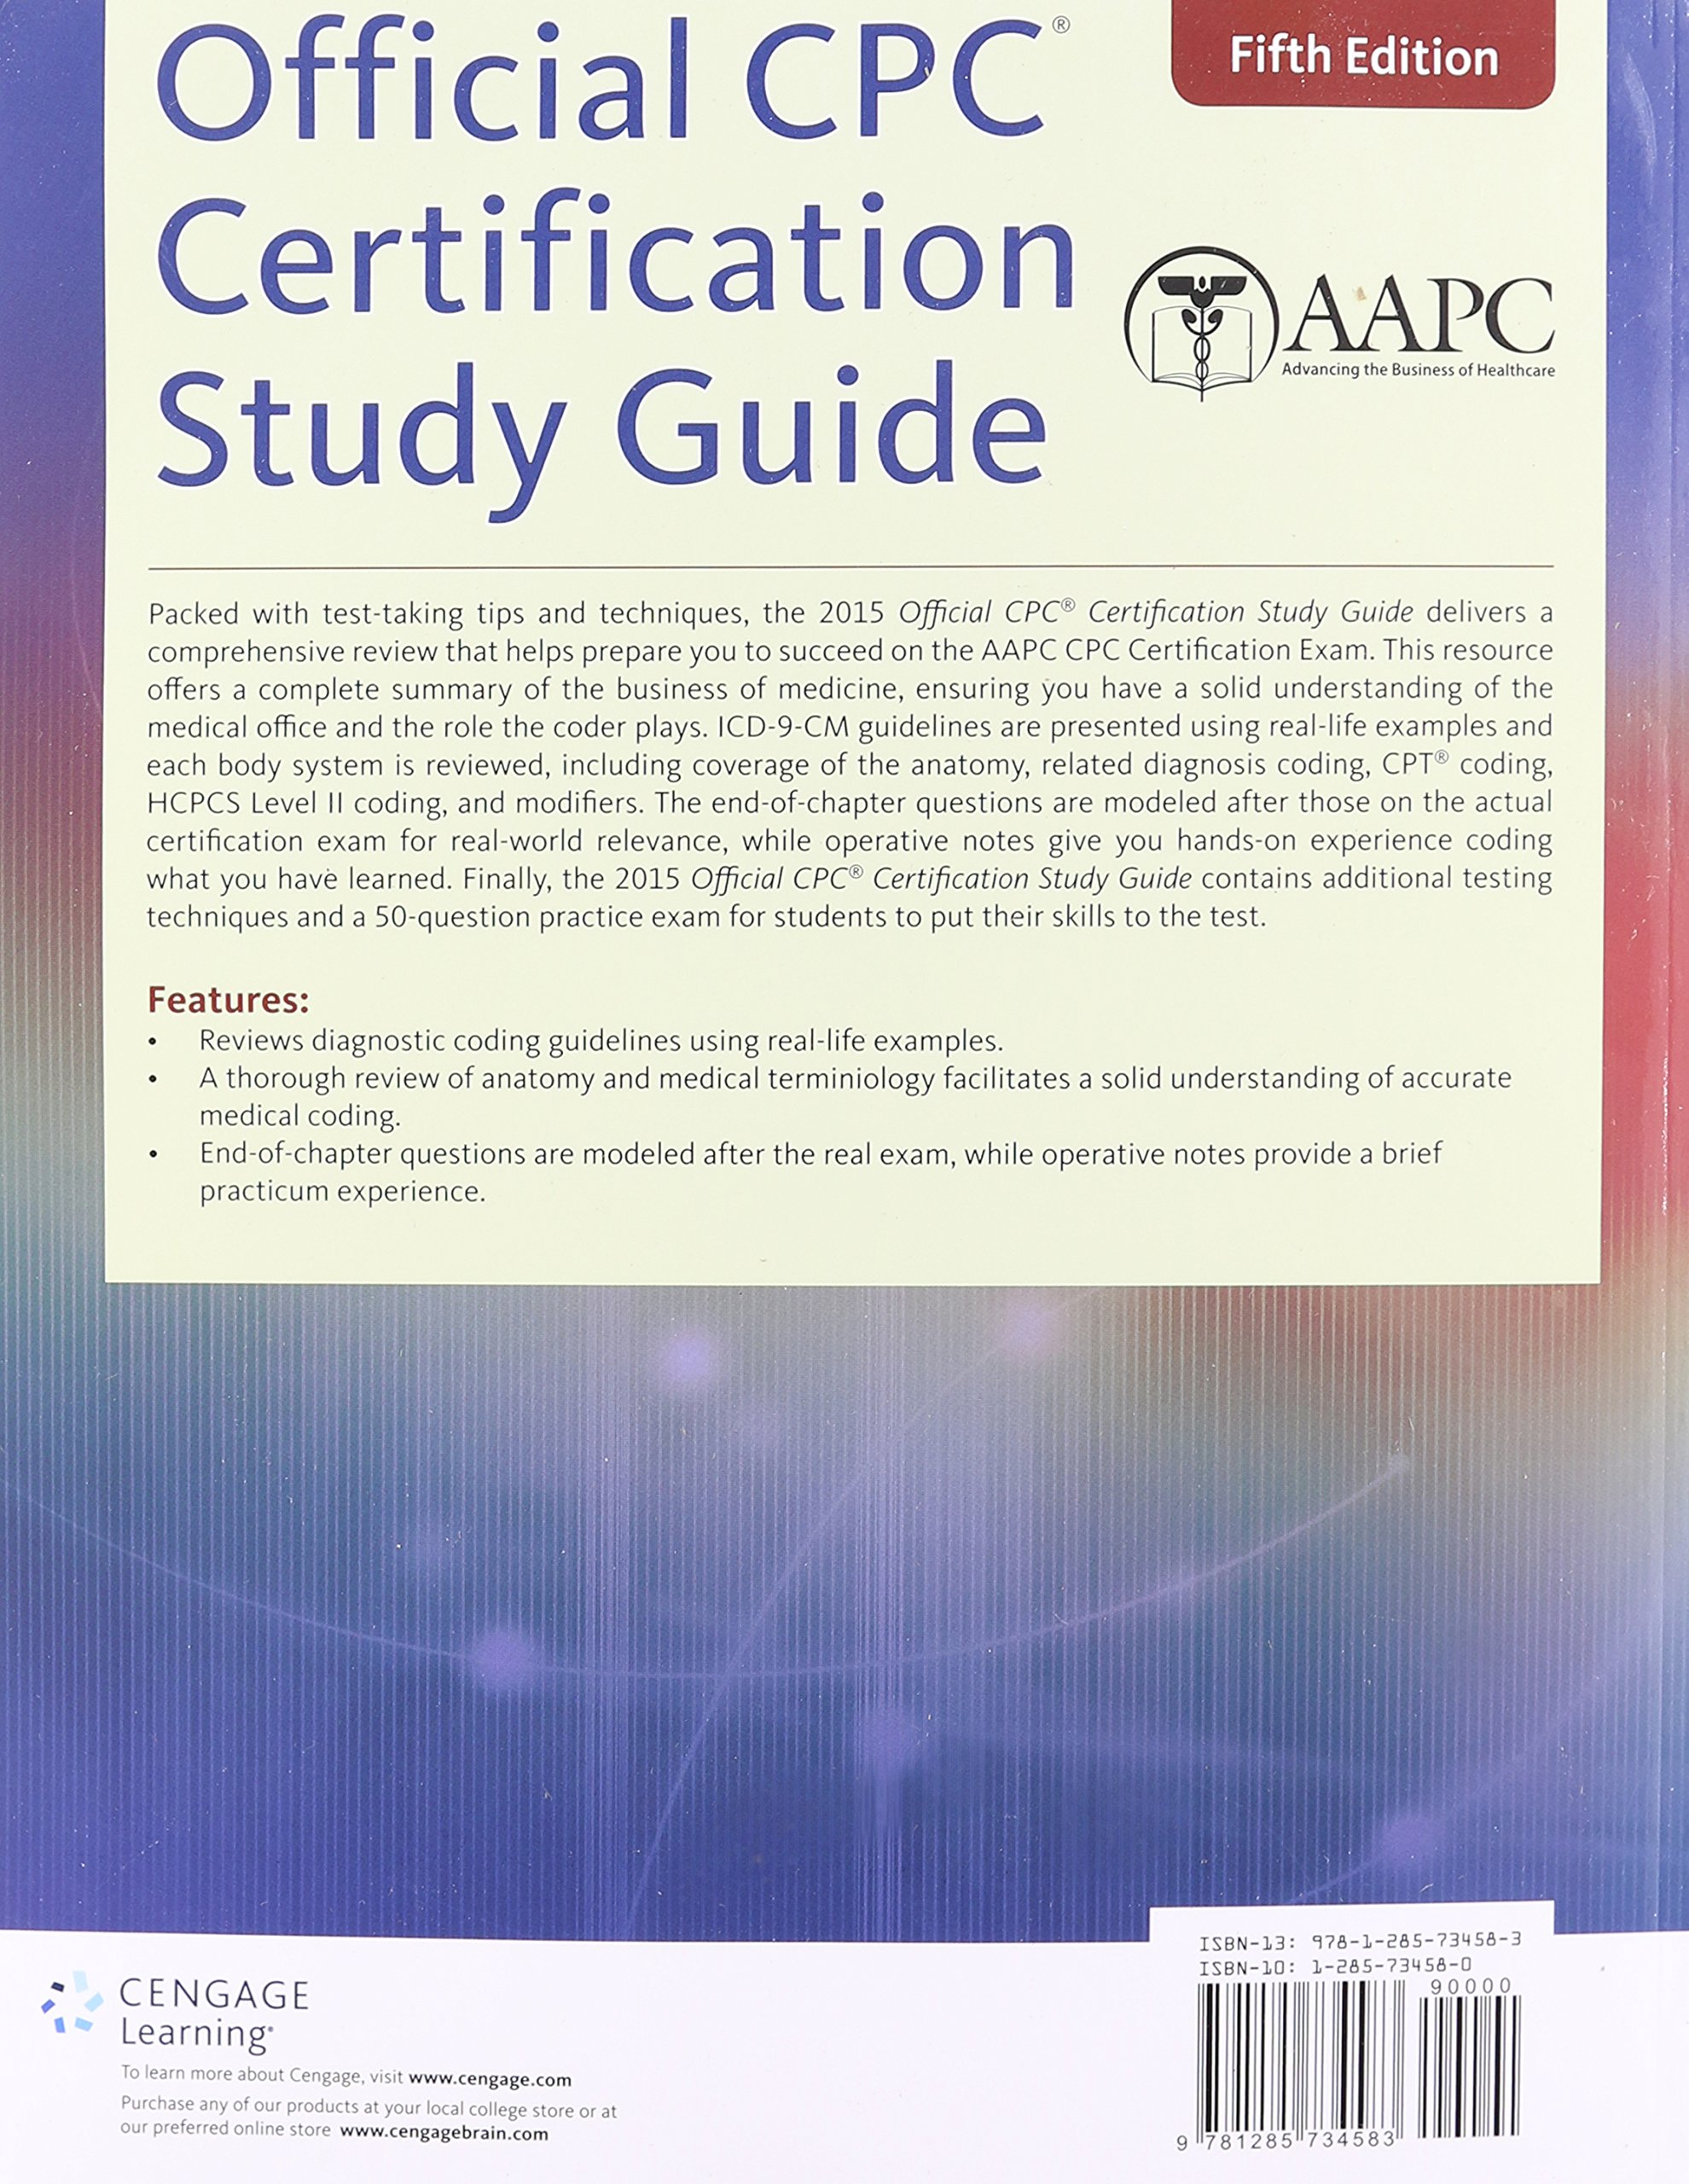 Buy Official Cpc Certification Study Guide Book Online At Low Prices